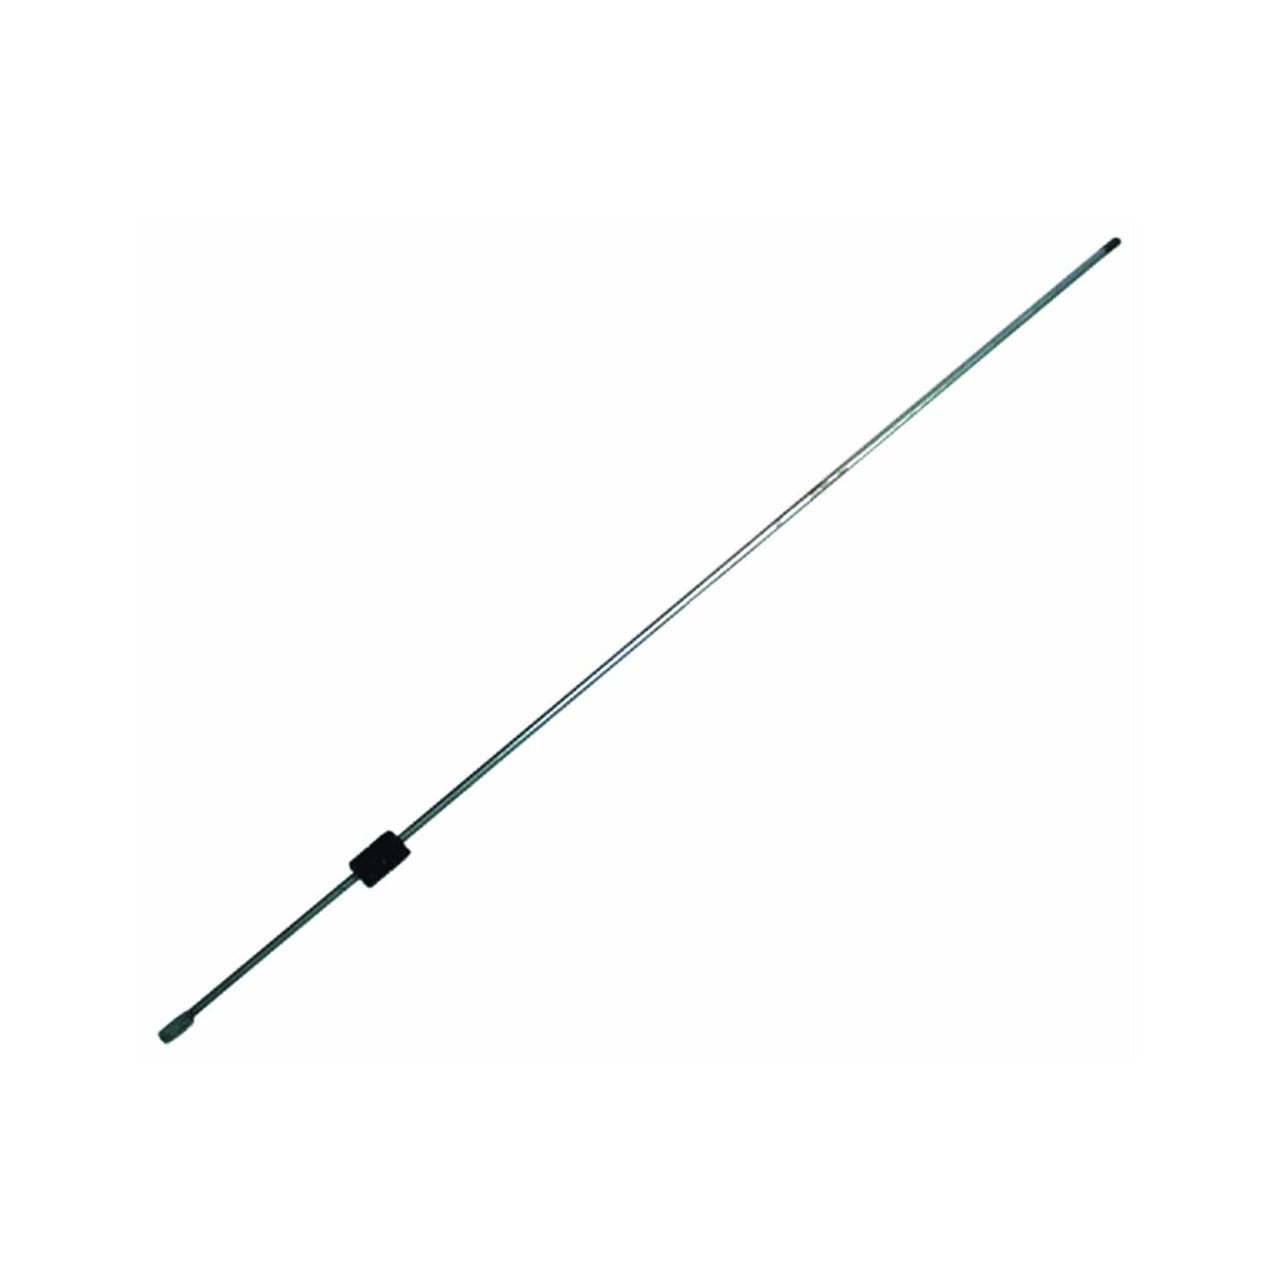 Flint Walling/Star 135267 Float Rod